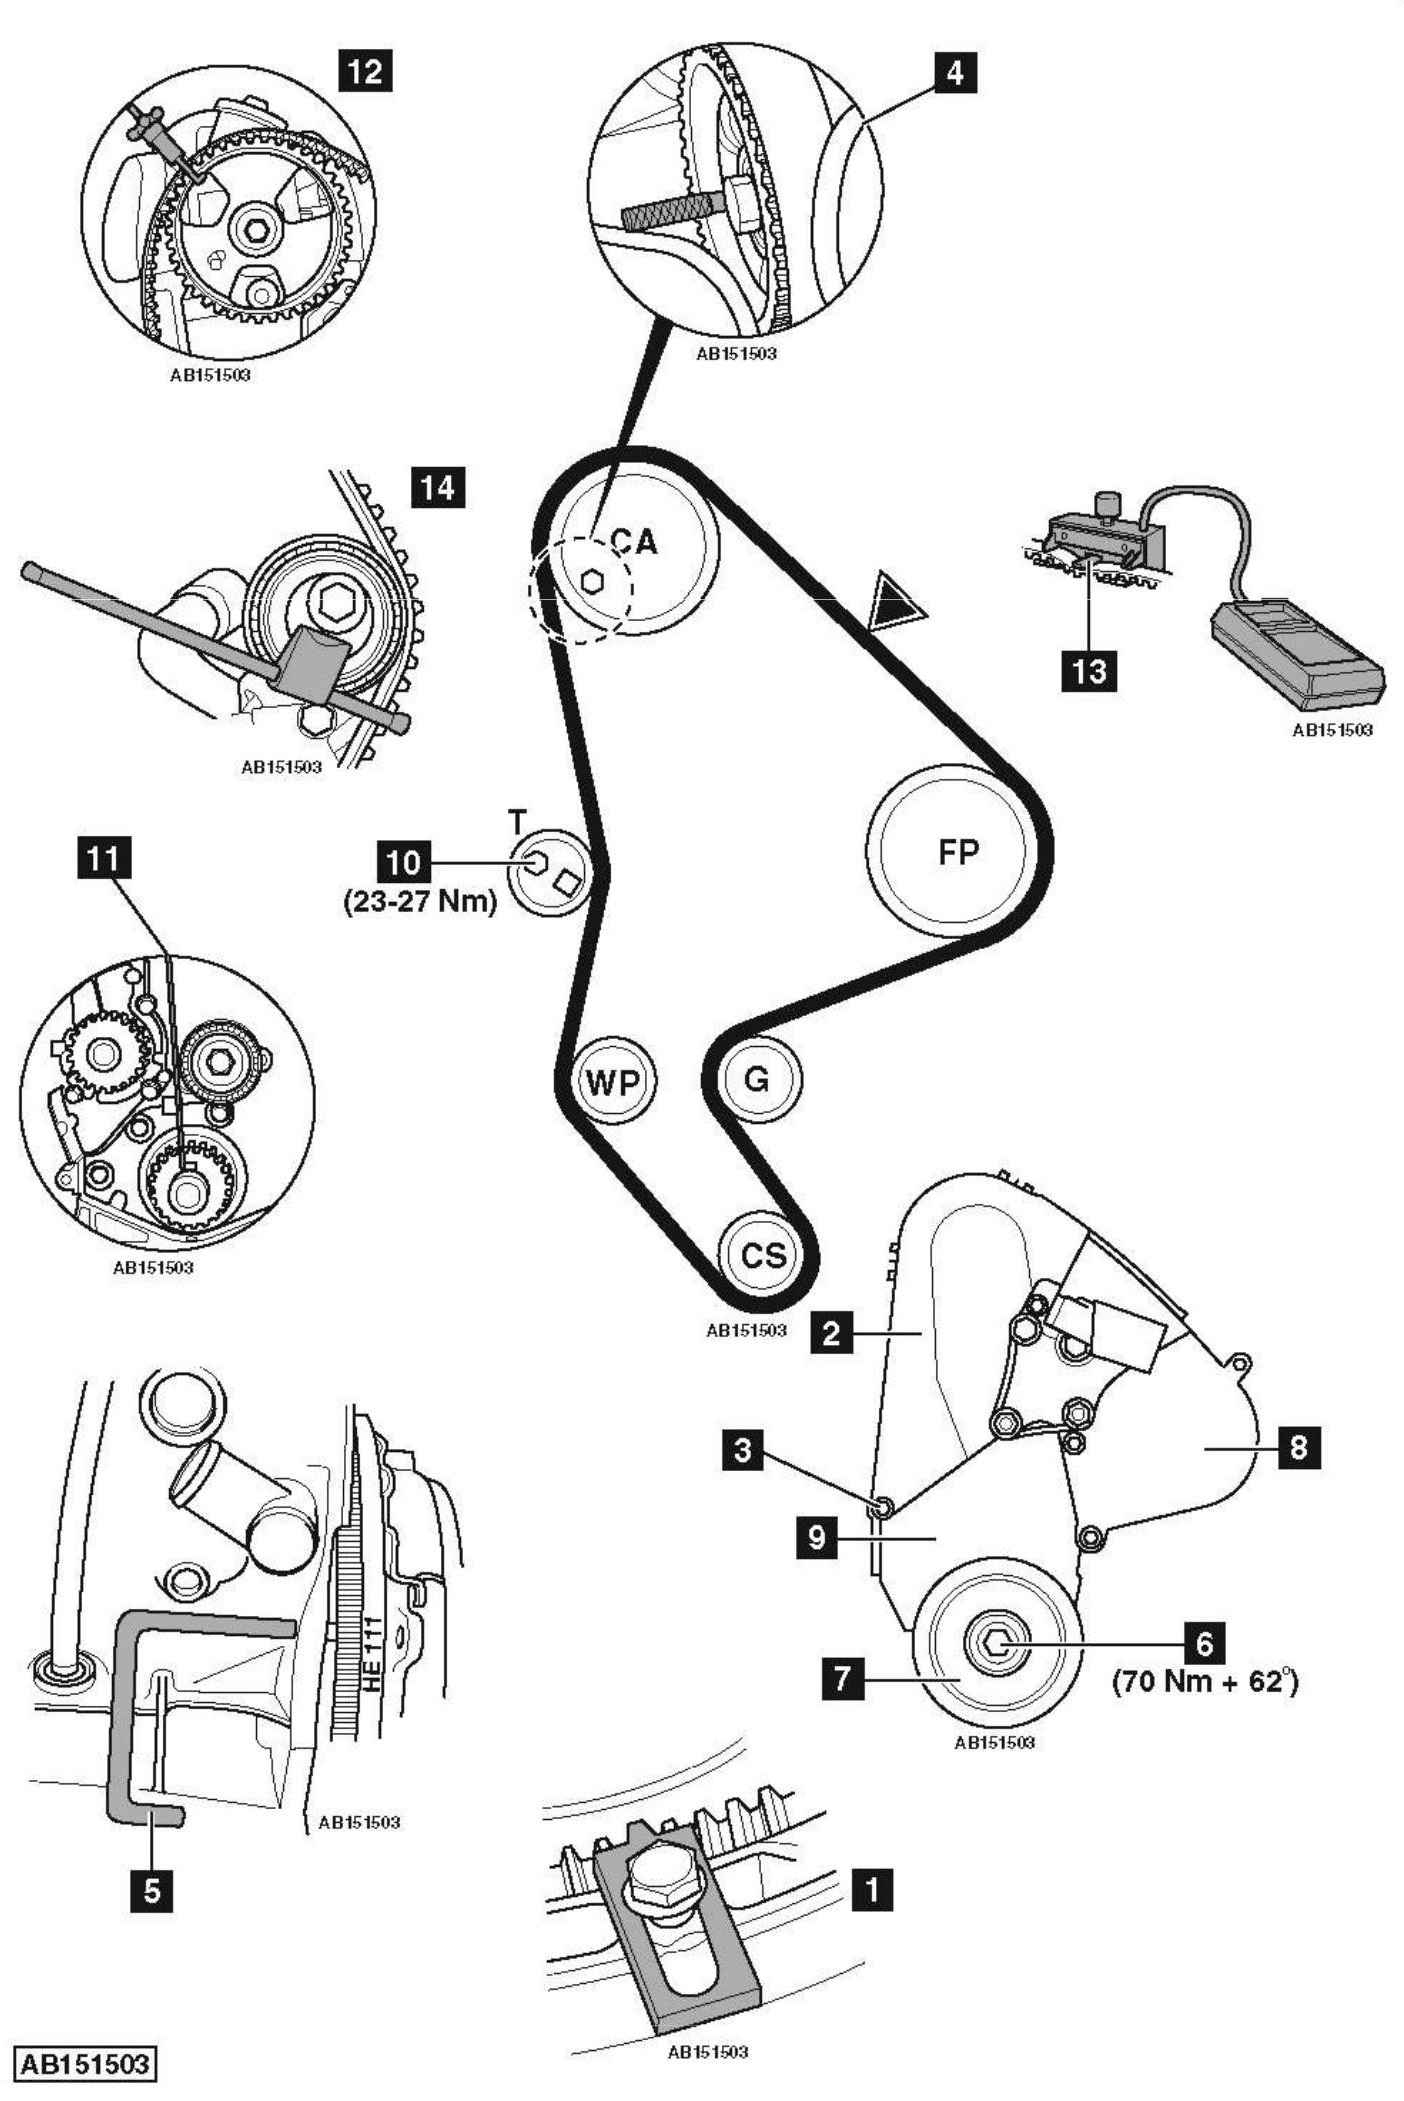 Service manual [How To Replace Timing Belt On A 2003 Acura